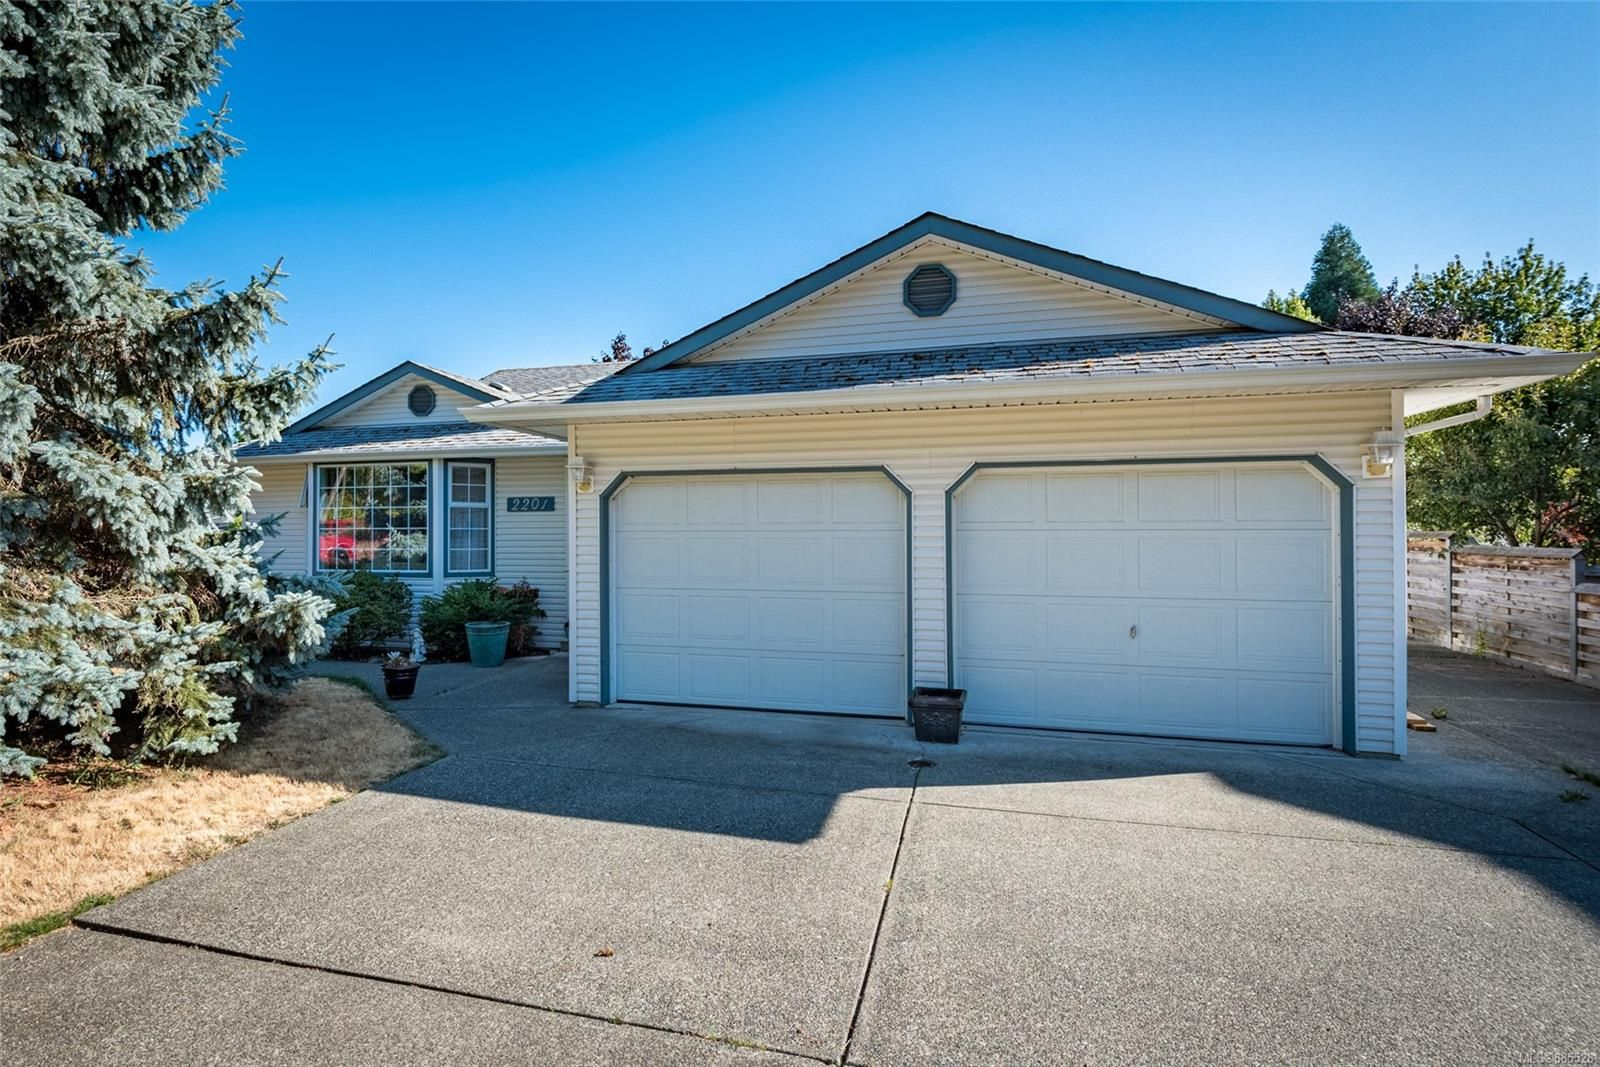 Main Photo: 2201 Bolt Ave in : CV Comox (Town of) House for sale (Comox Valley)  : MLS®# 885528